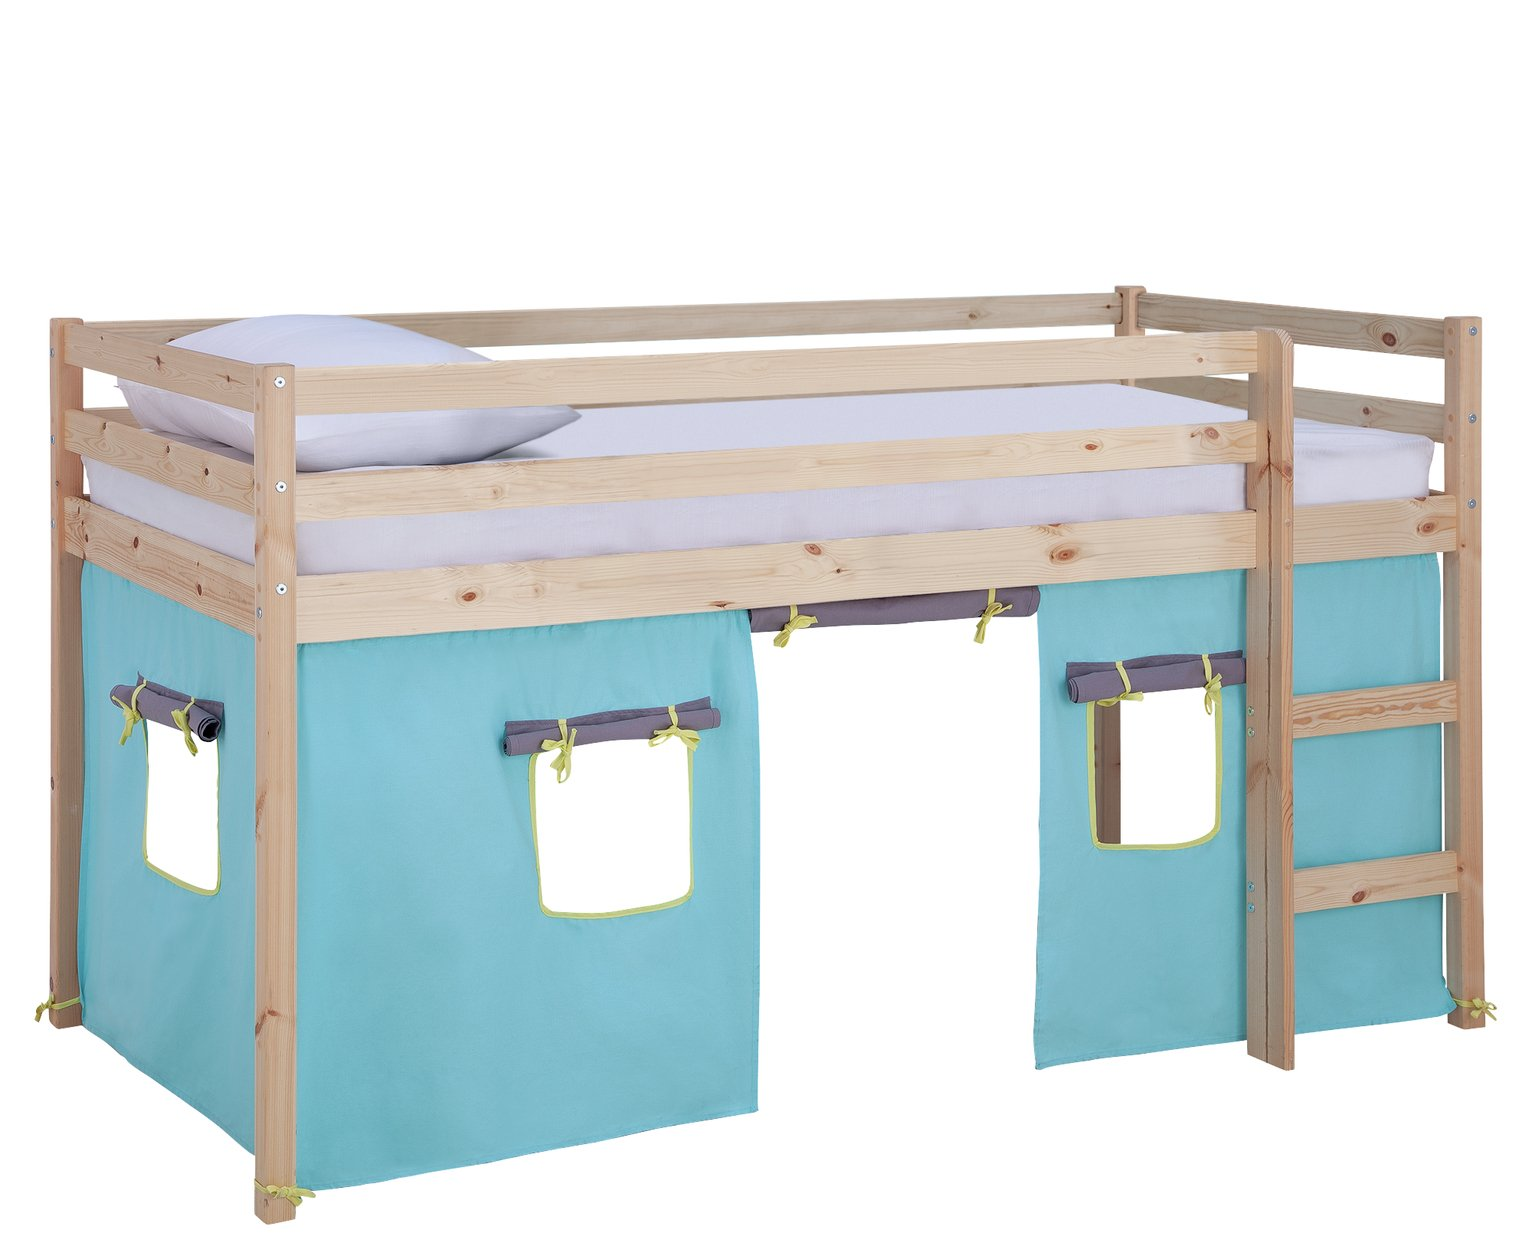 Argos Home Kaycie Pine Mid Sleeper, Blue Tent &Kids Mattress